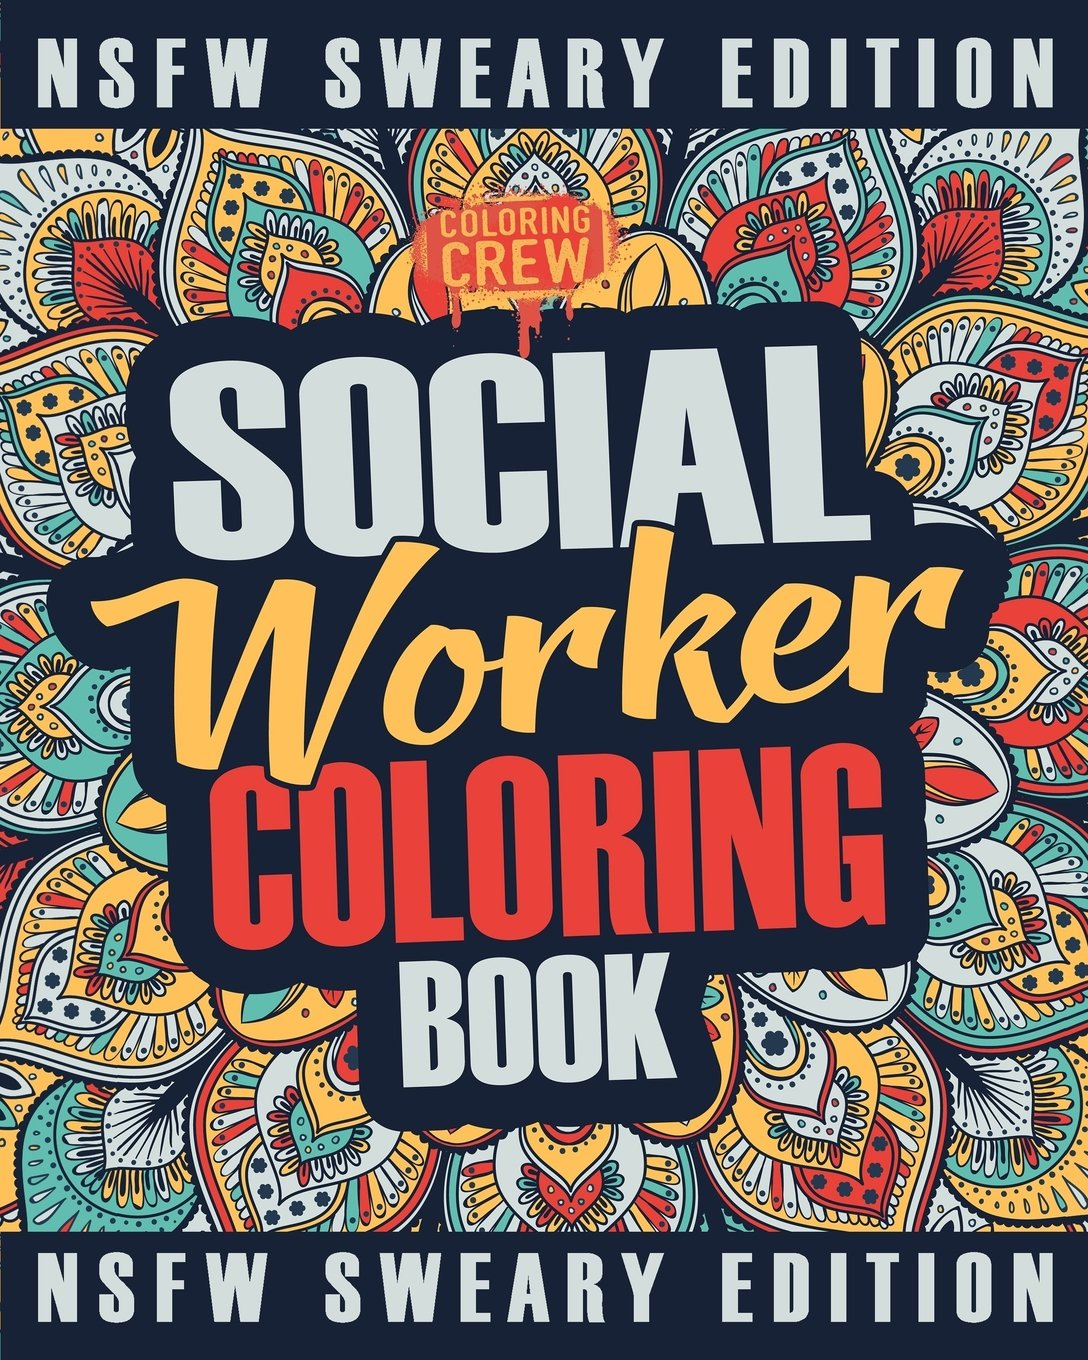 Social worker coloring book a sweary irreverent funny social